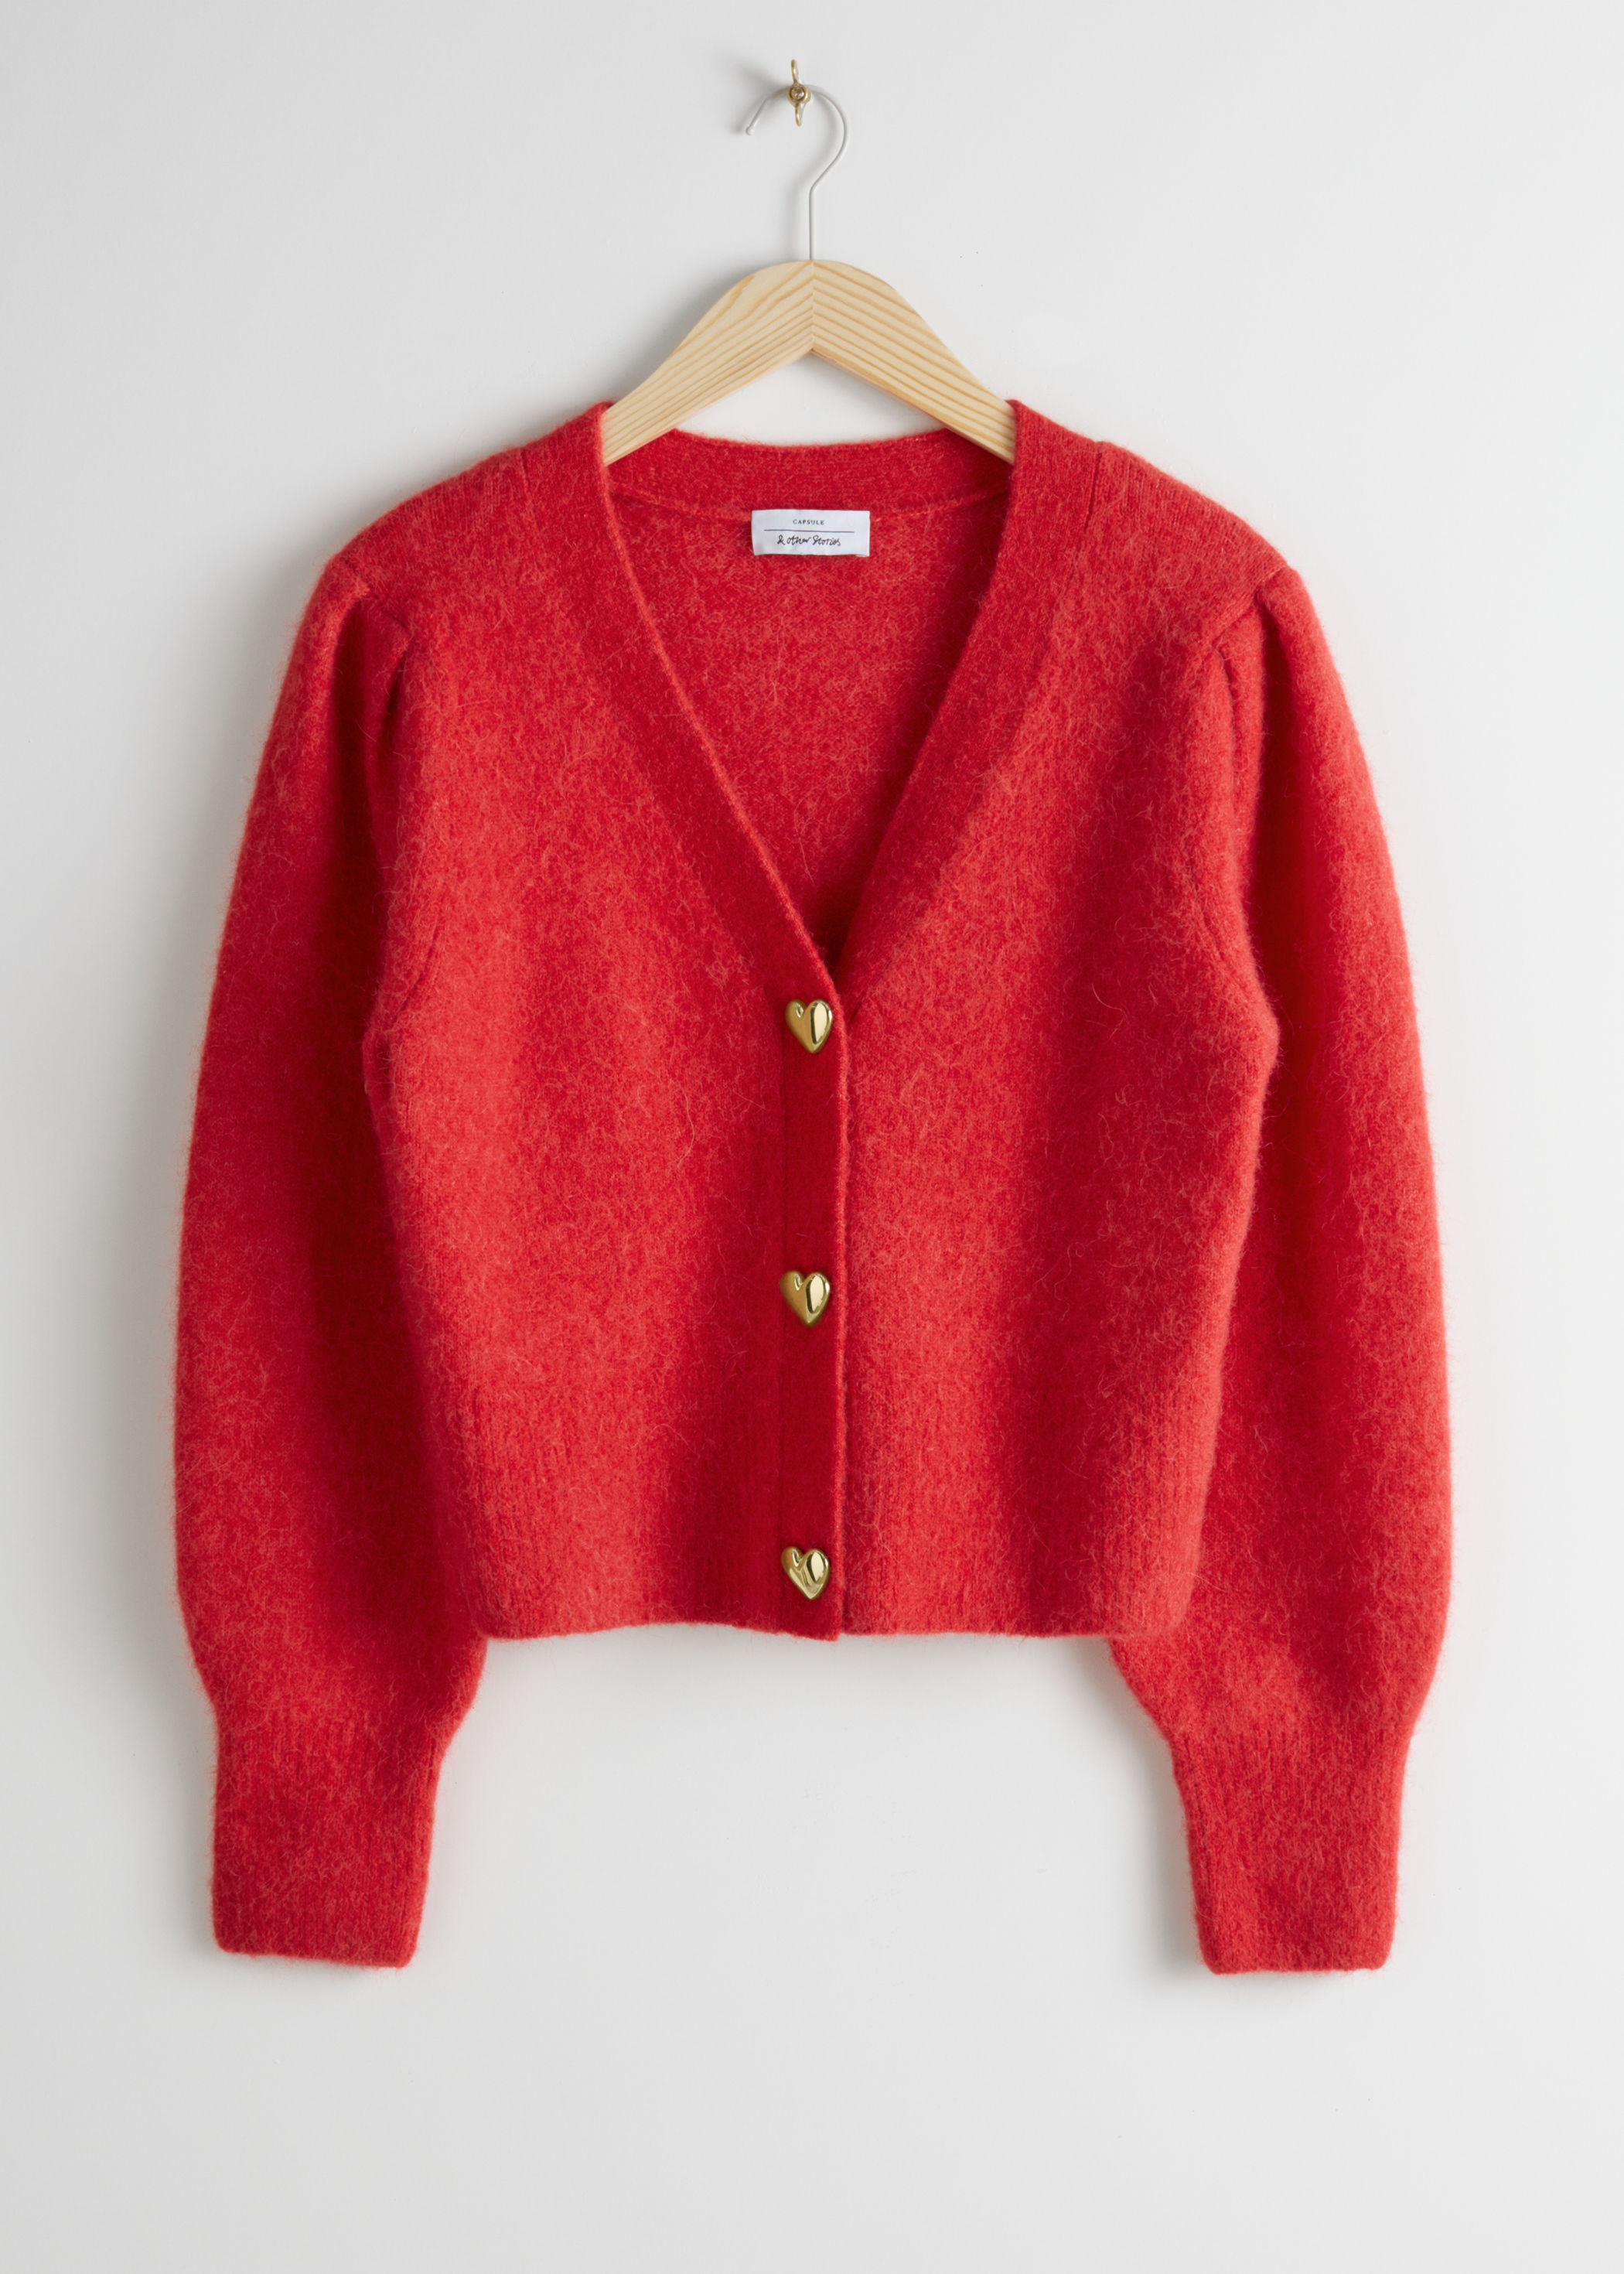 & other Stories Knit jacket $99.00